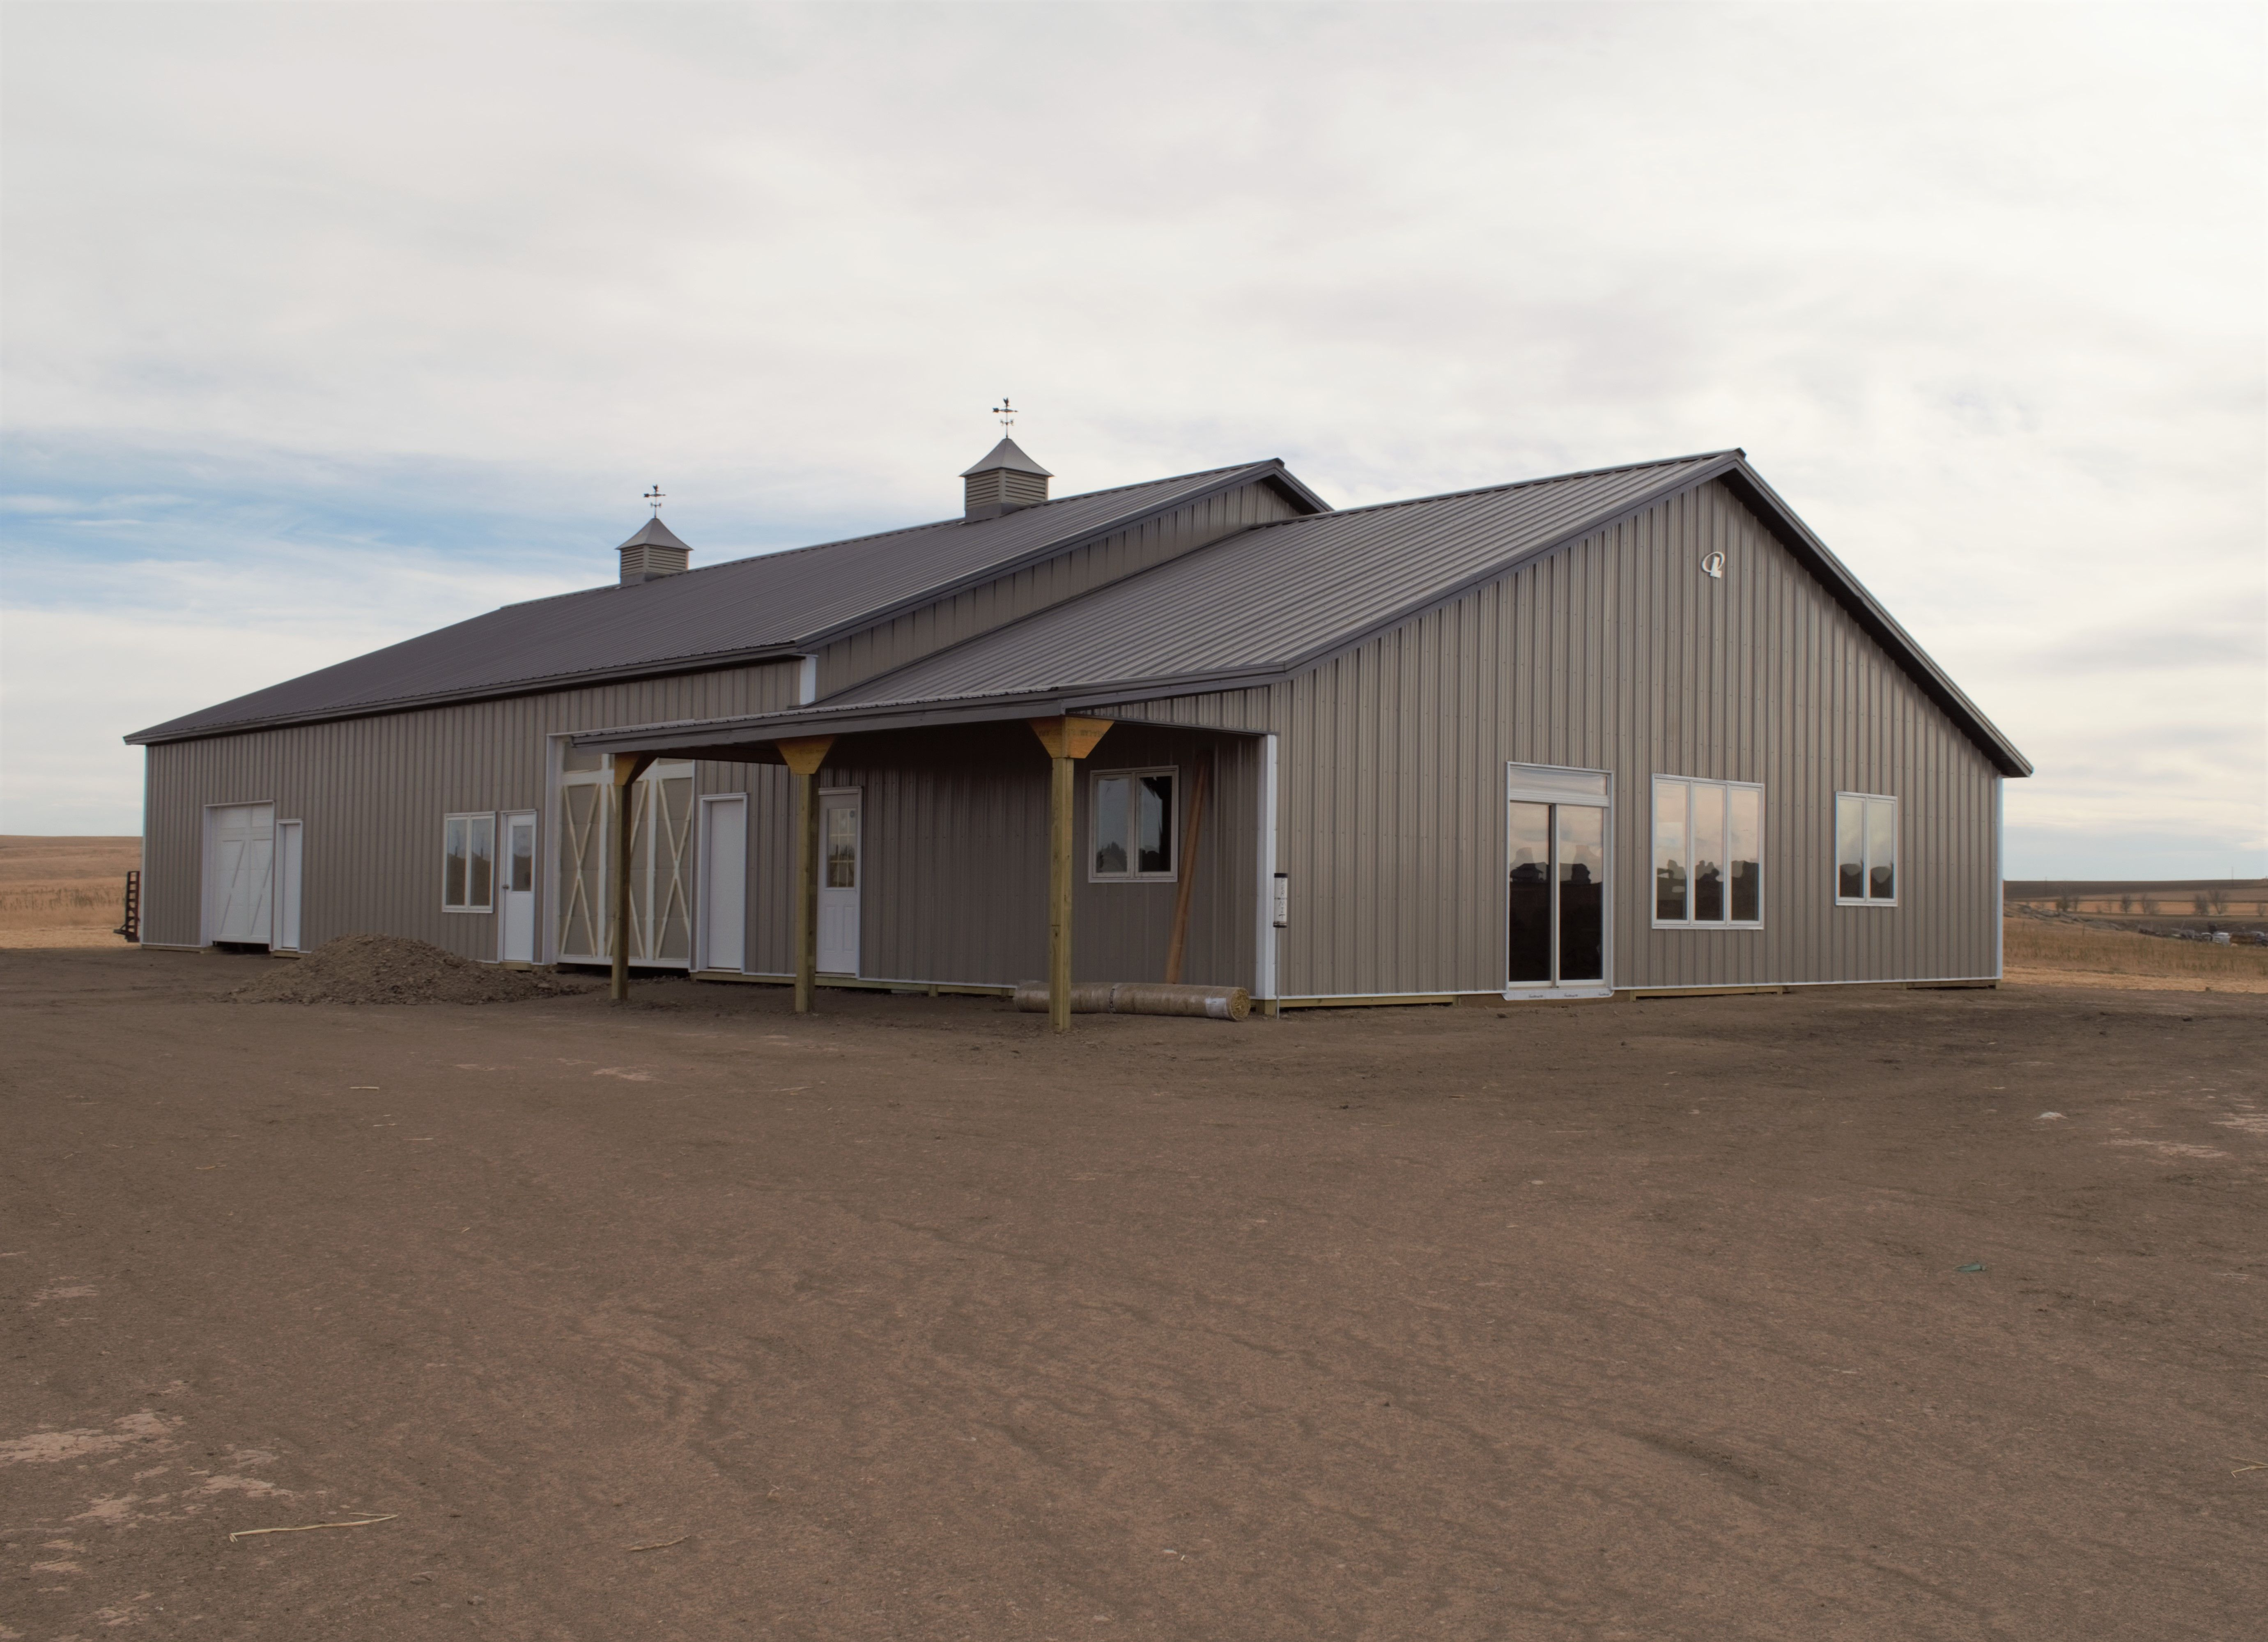 quality lean in slate eave pictures small barns pin to colorado buildings burnished wisconsin storage pole and with minnesota building